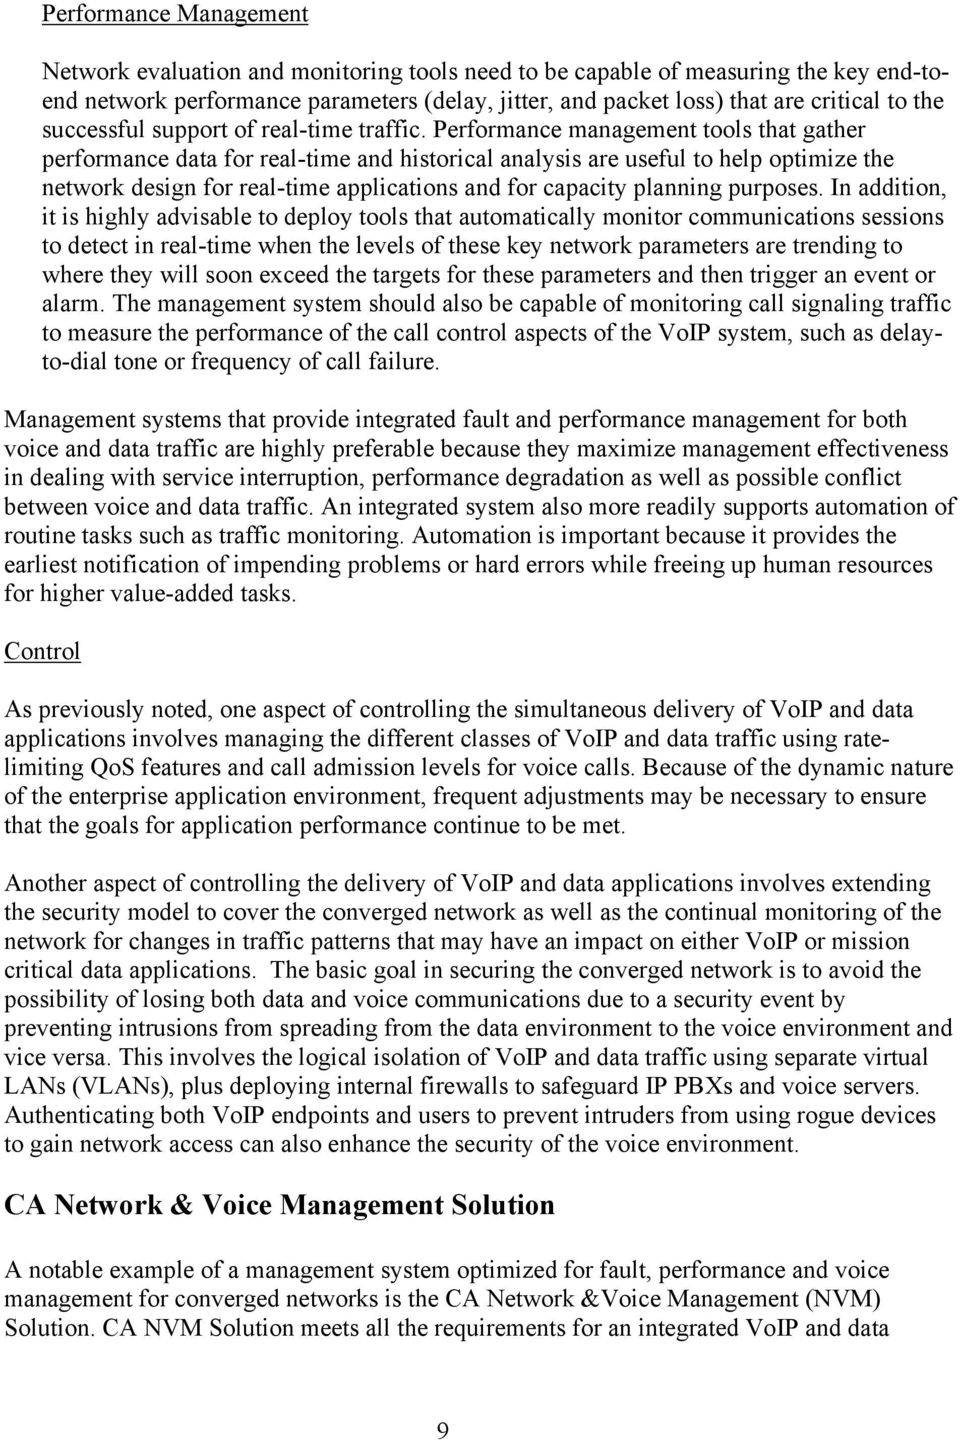 Performance management tools that gather performance data for real-time and historical analysis are useful to help optimize the network design for real-time applications and for capacity planning